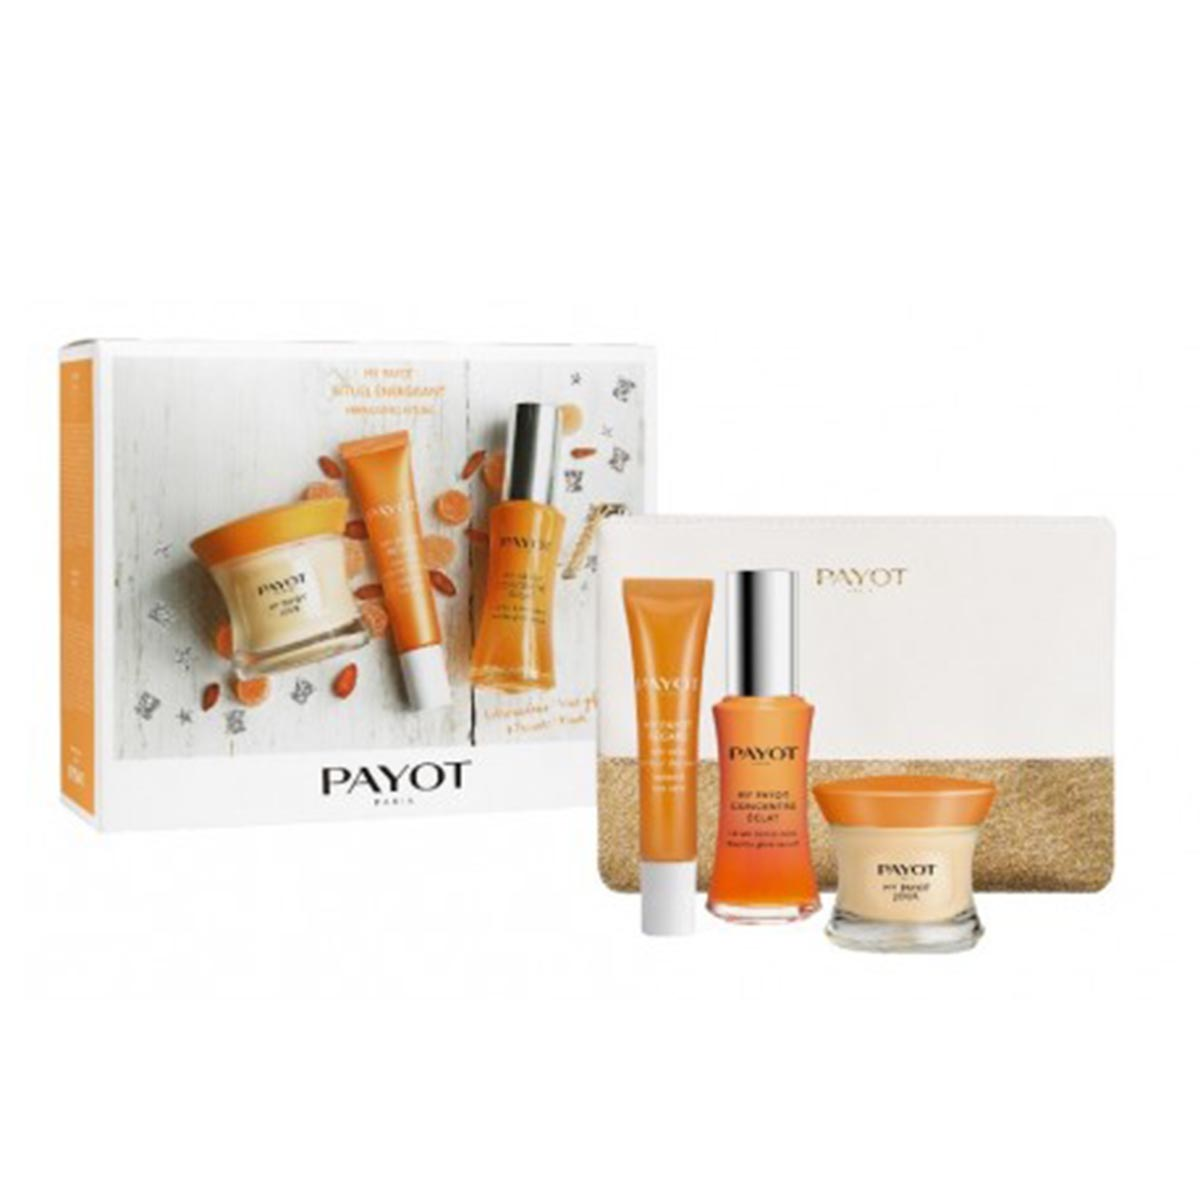 Payot my payot jour creme 50ml regard 15ml concentree 30ml neceser